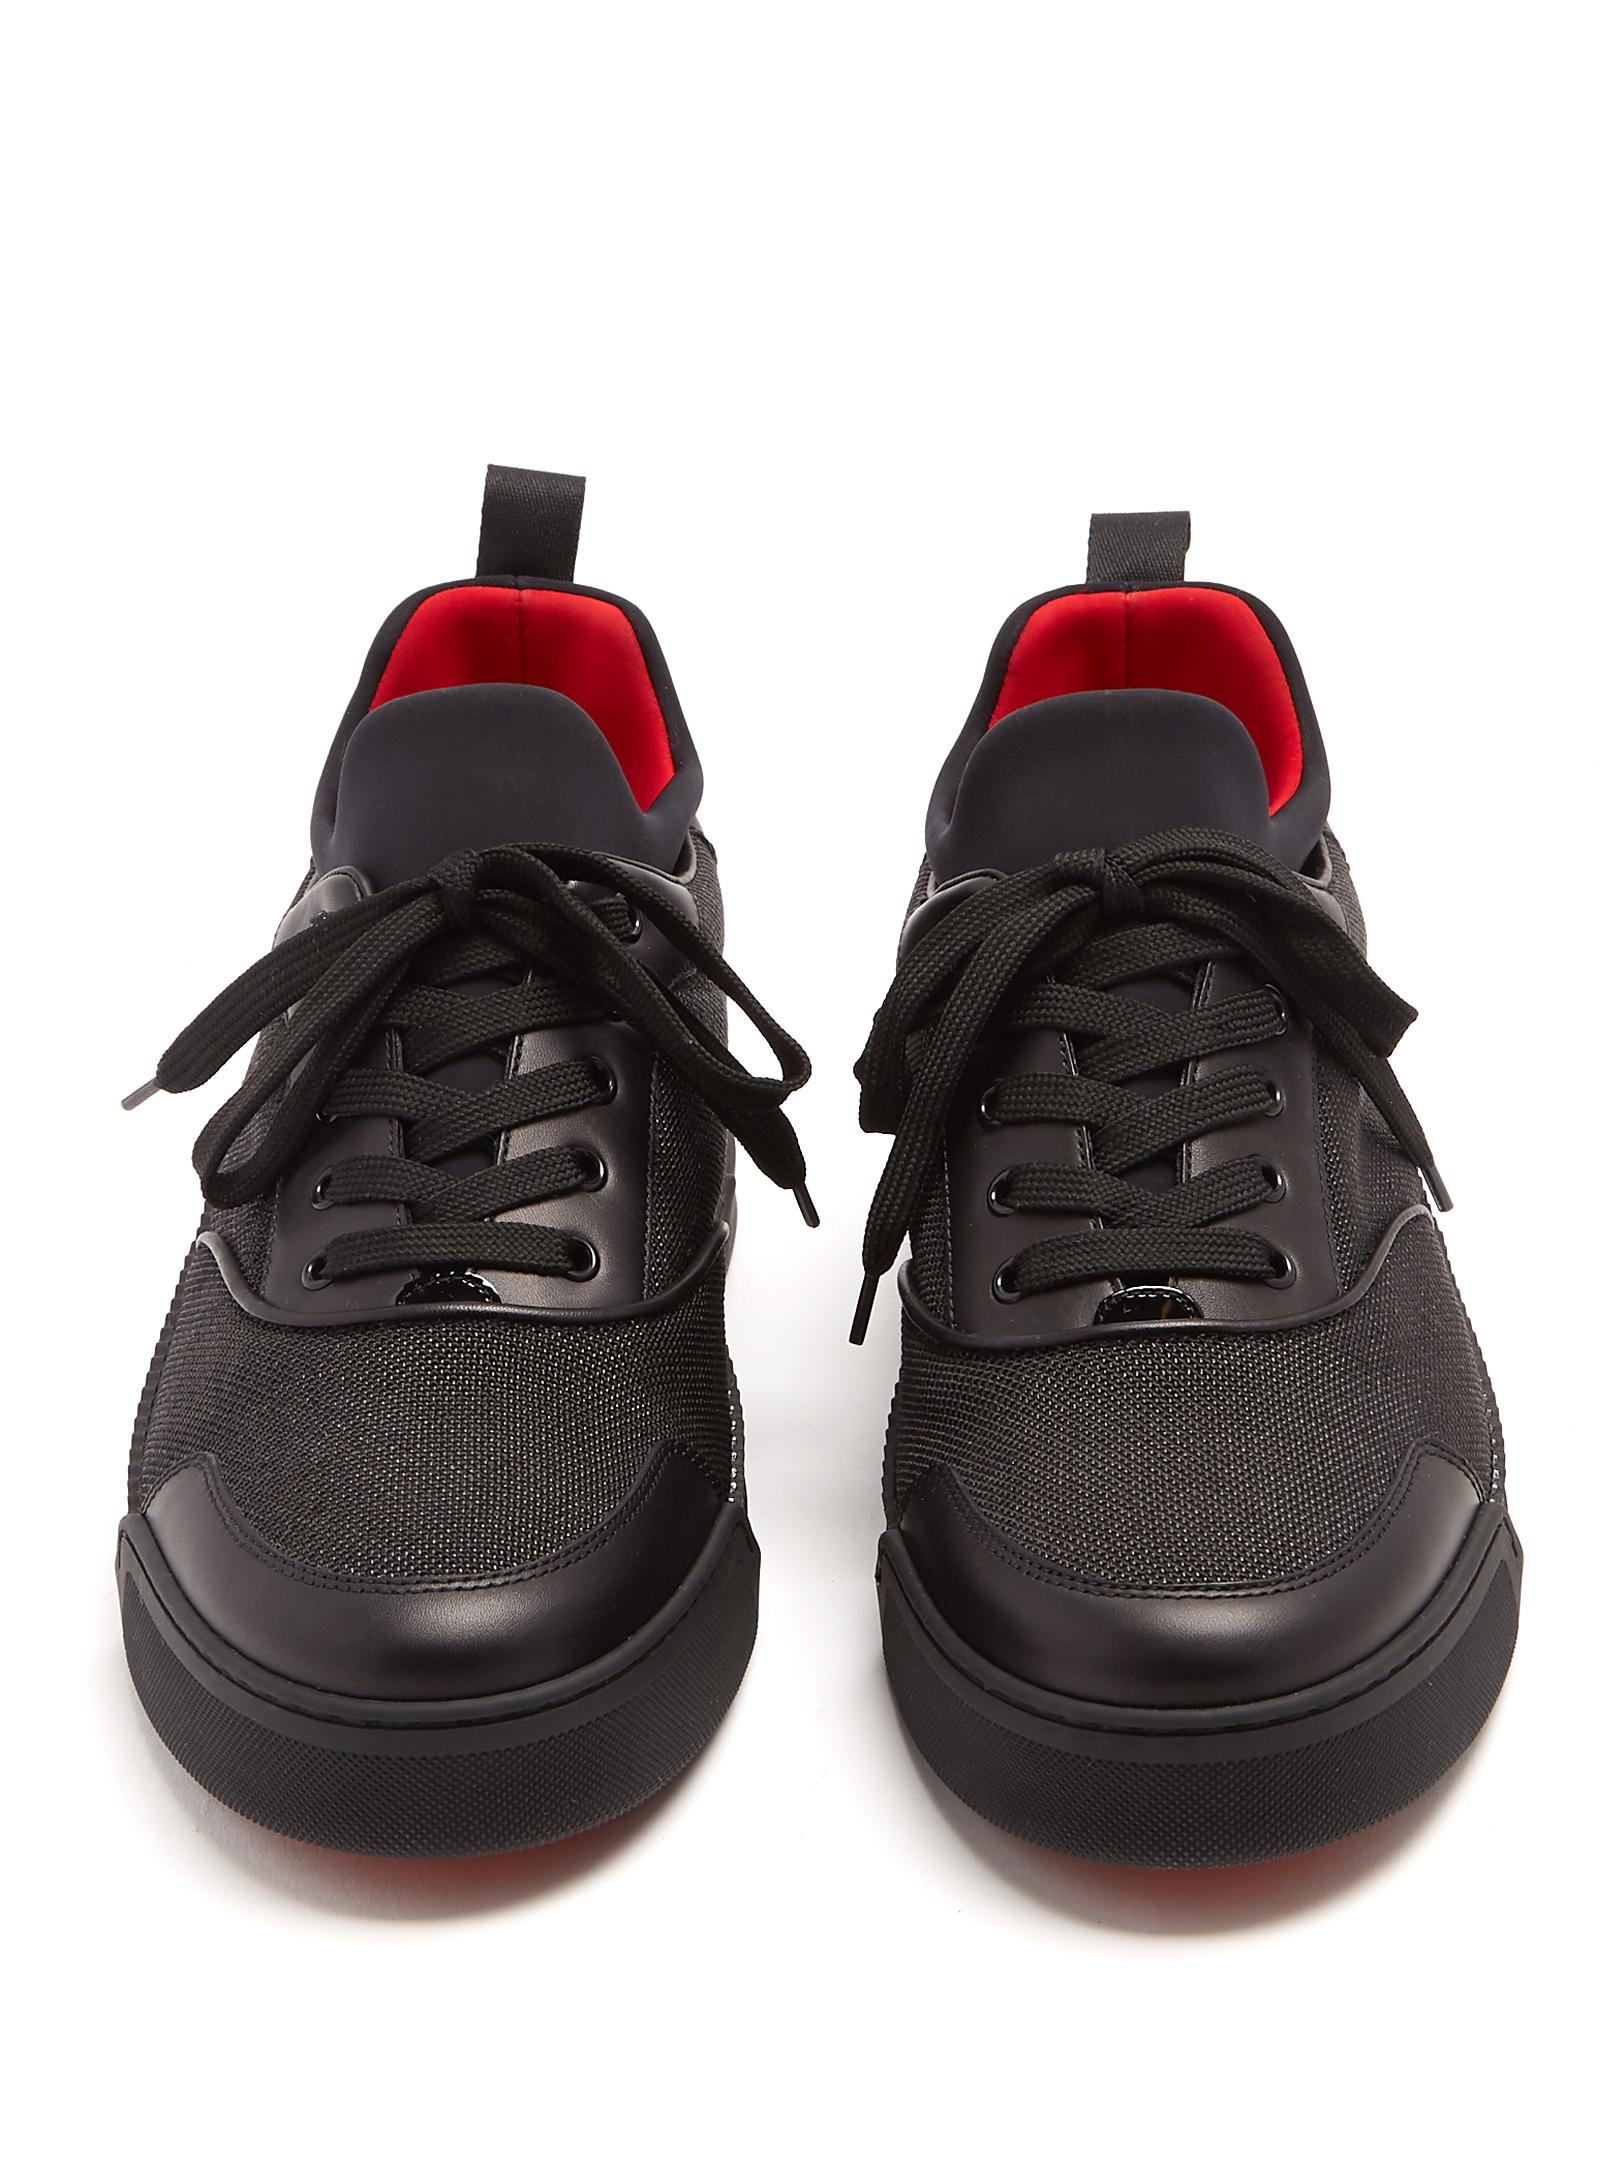 Lyst Christian Louboutin Aurelien Low Top Leather